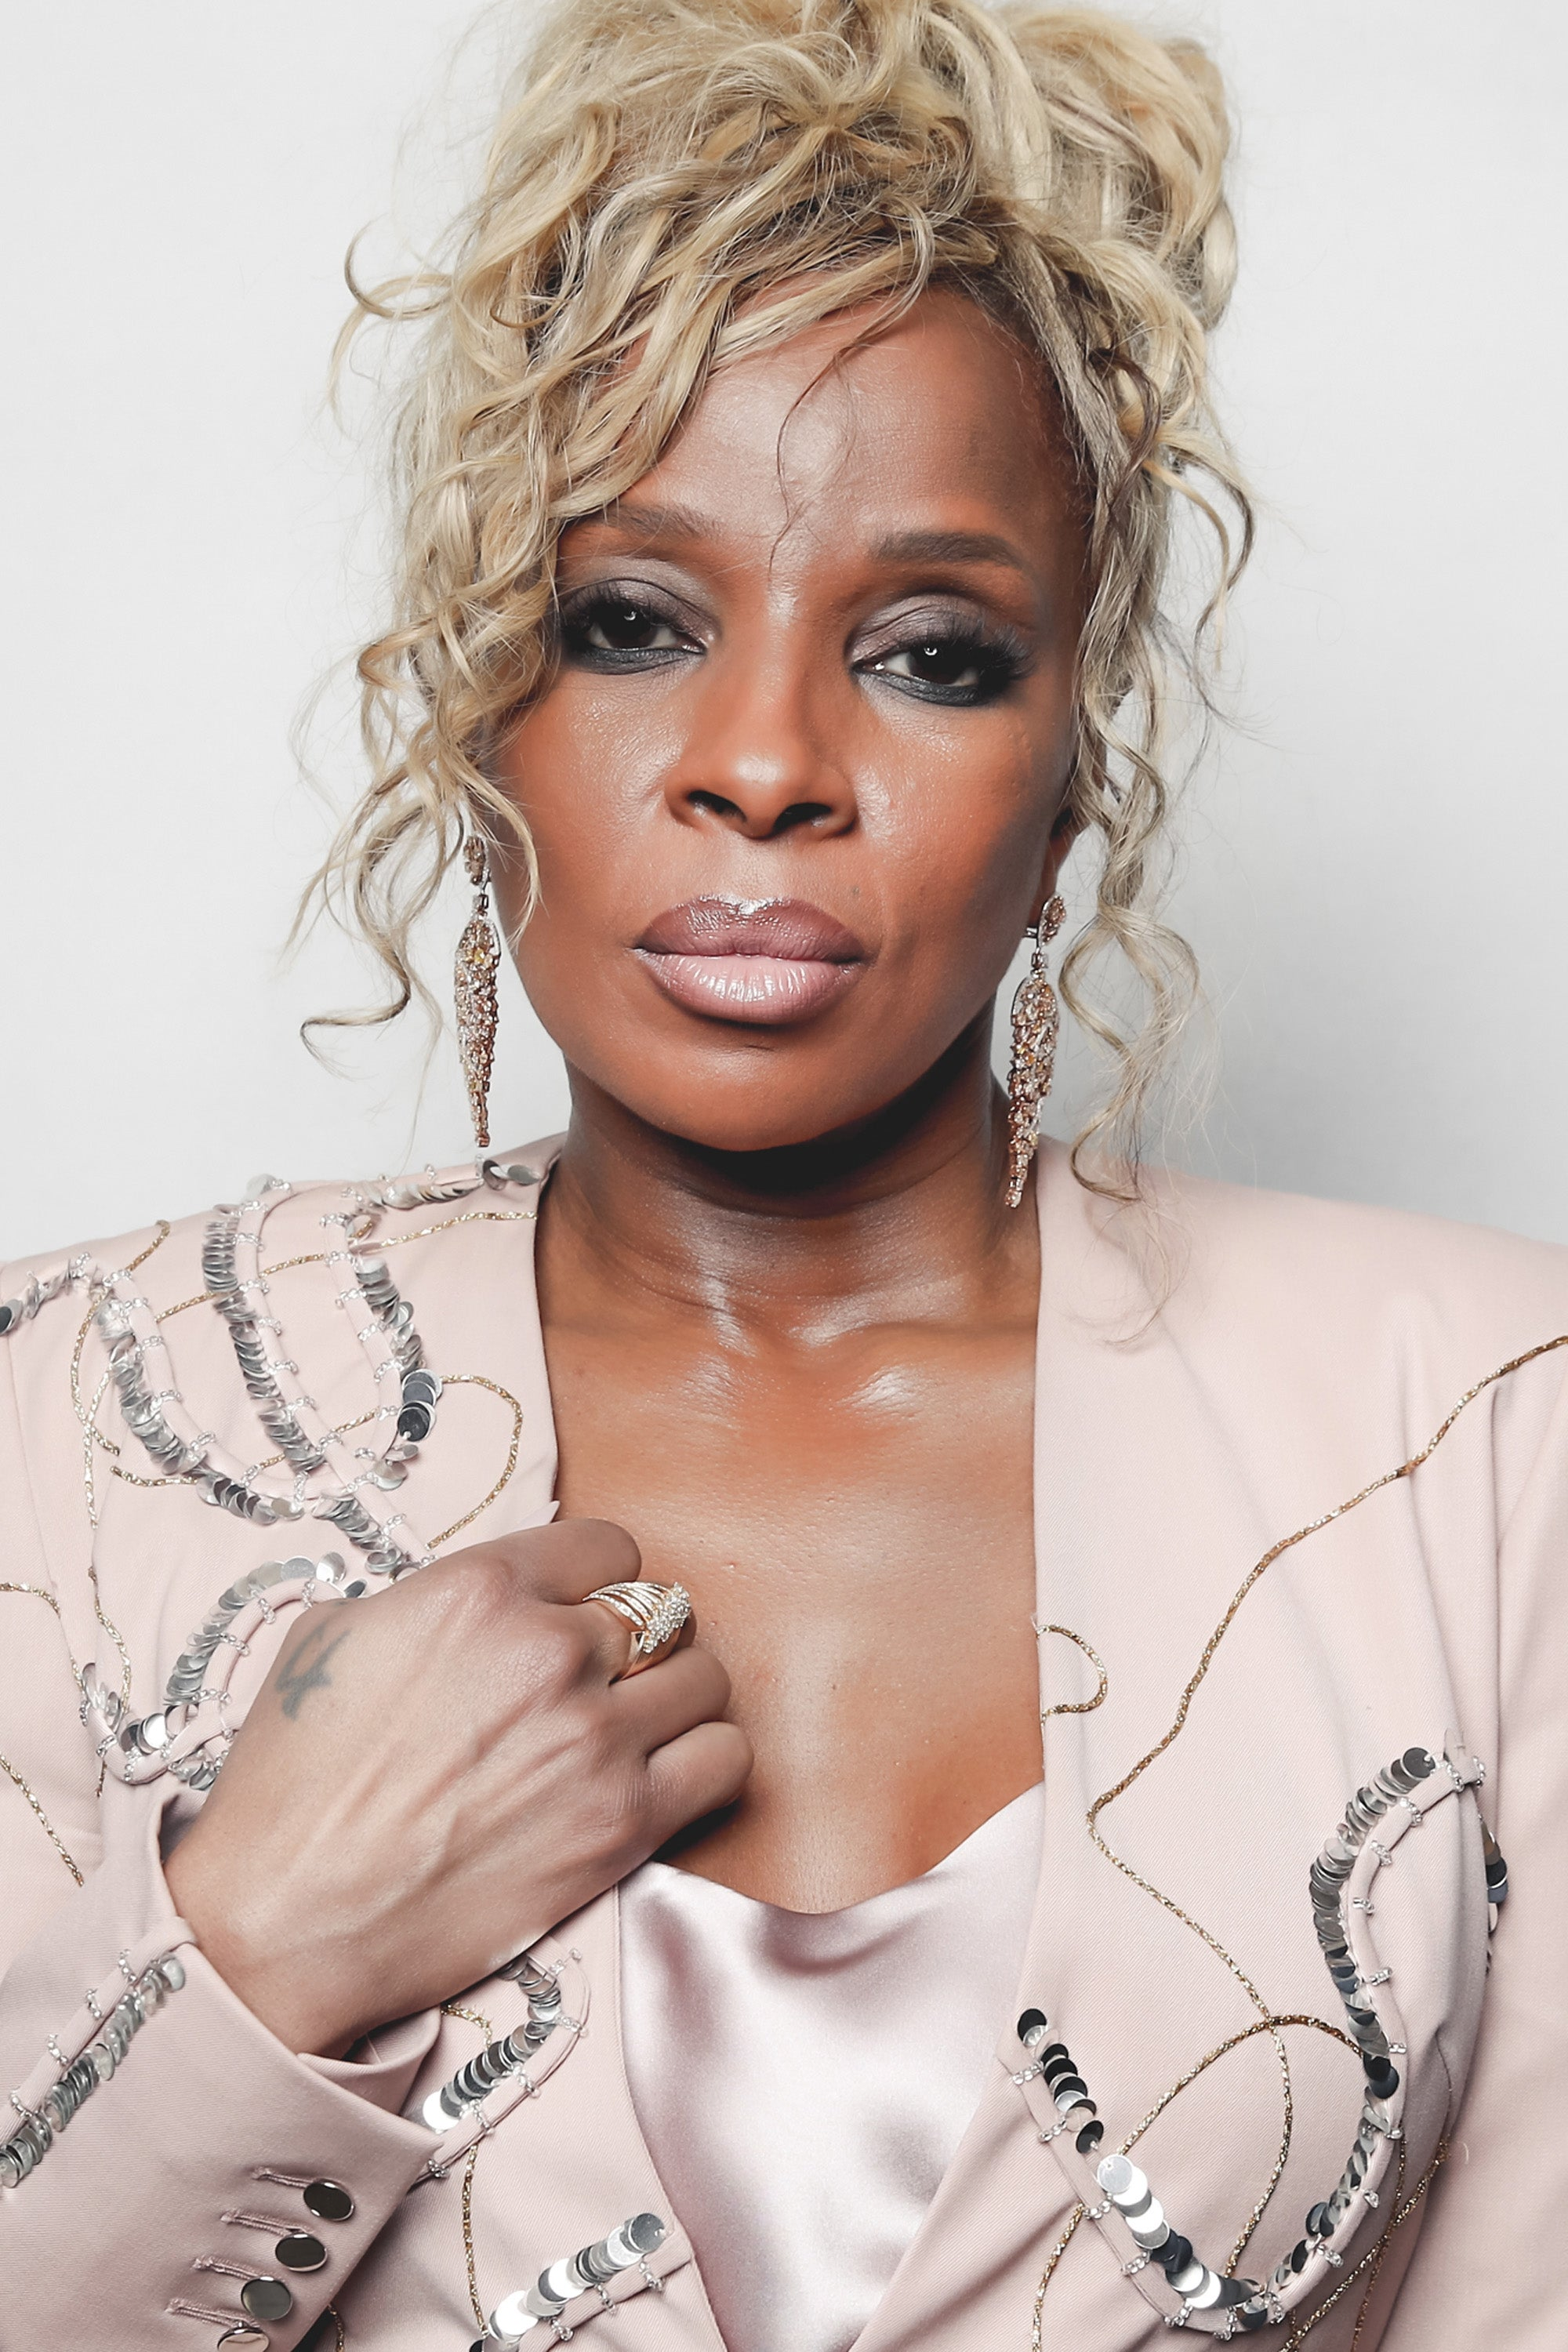 Mary J. Blige Bravely Shared That She Was Sexually Harassed As A Child